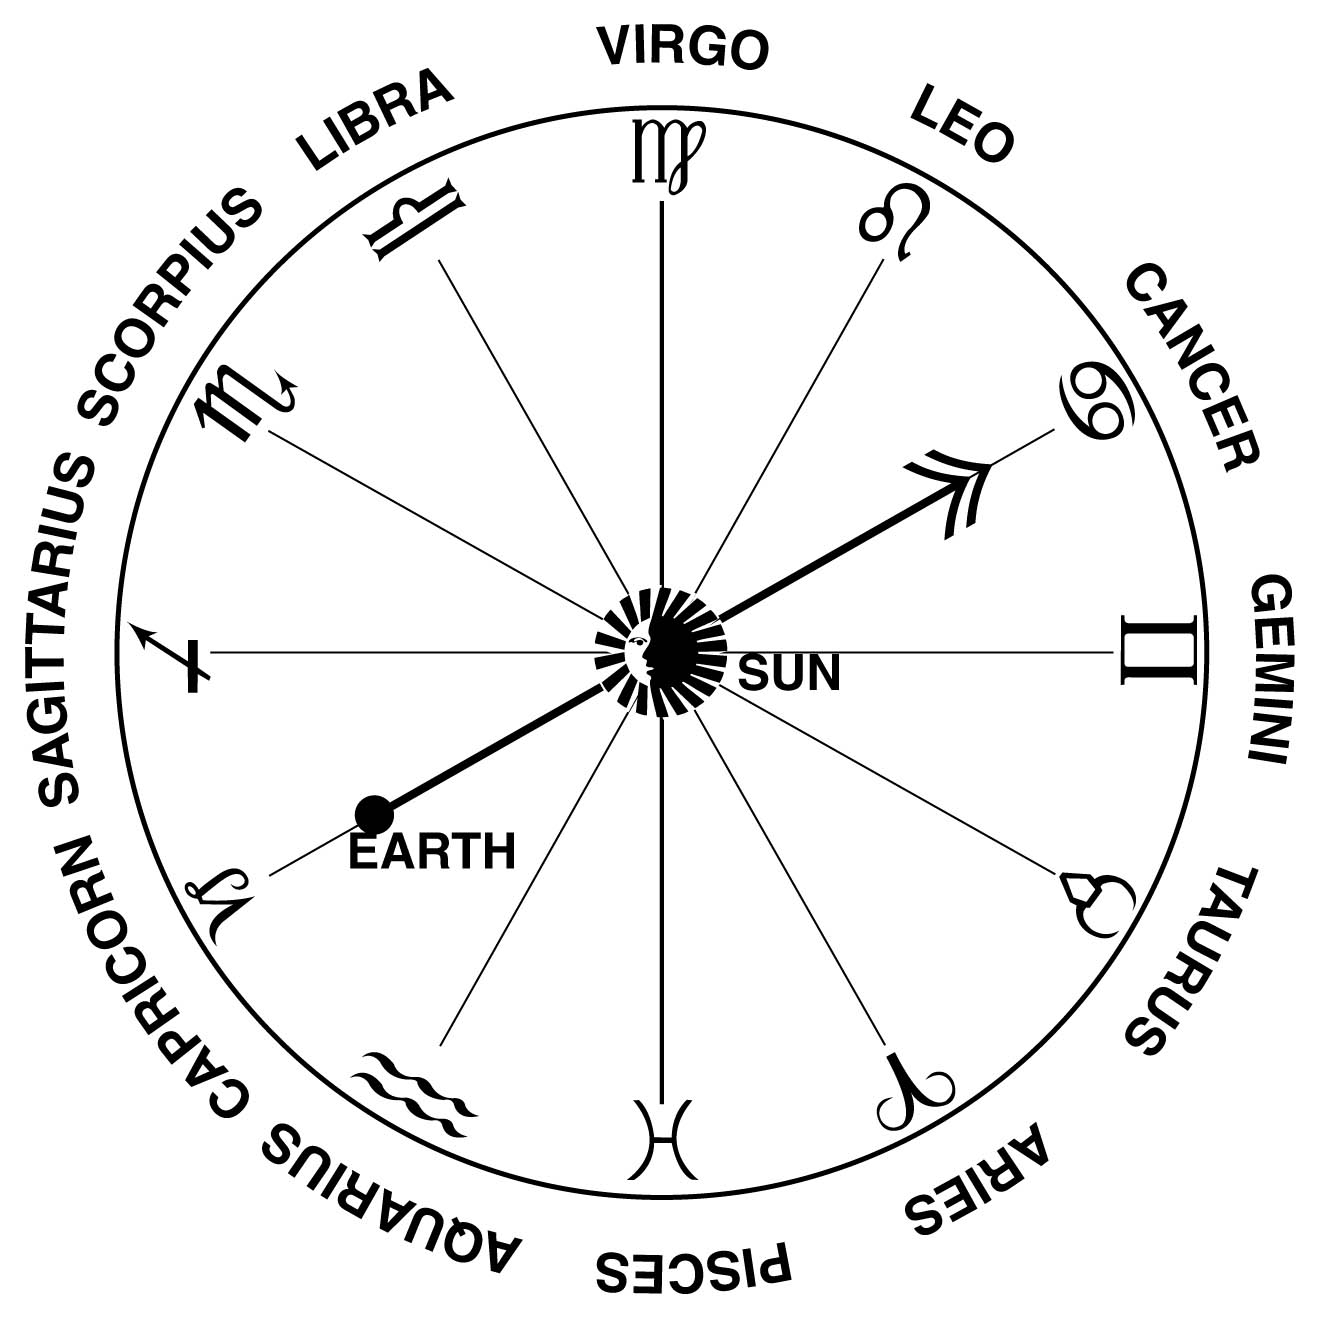 Zodiac signs and their dates universe today a chart of the constellations and signs that make up the zodiac credit nasa nvjuhfo Choice Image